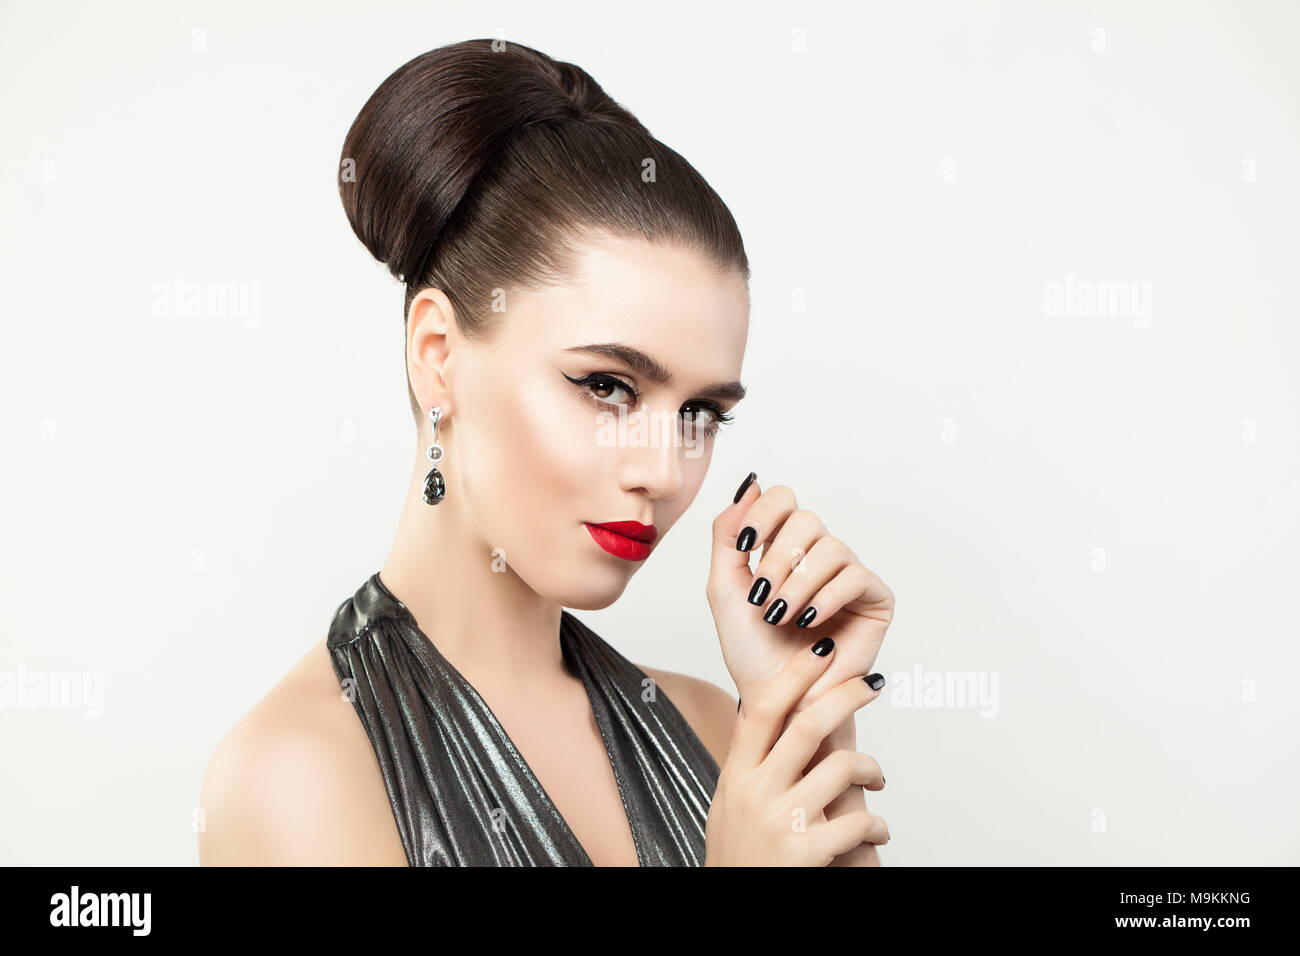 000b8b768 Stylish Woman showing Hands with Manicure Nails. Black Nail polish. Red Lips  and Eyeliner Makeup. Perfect Female Model Face